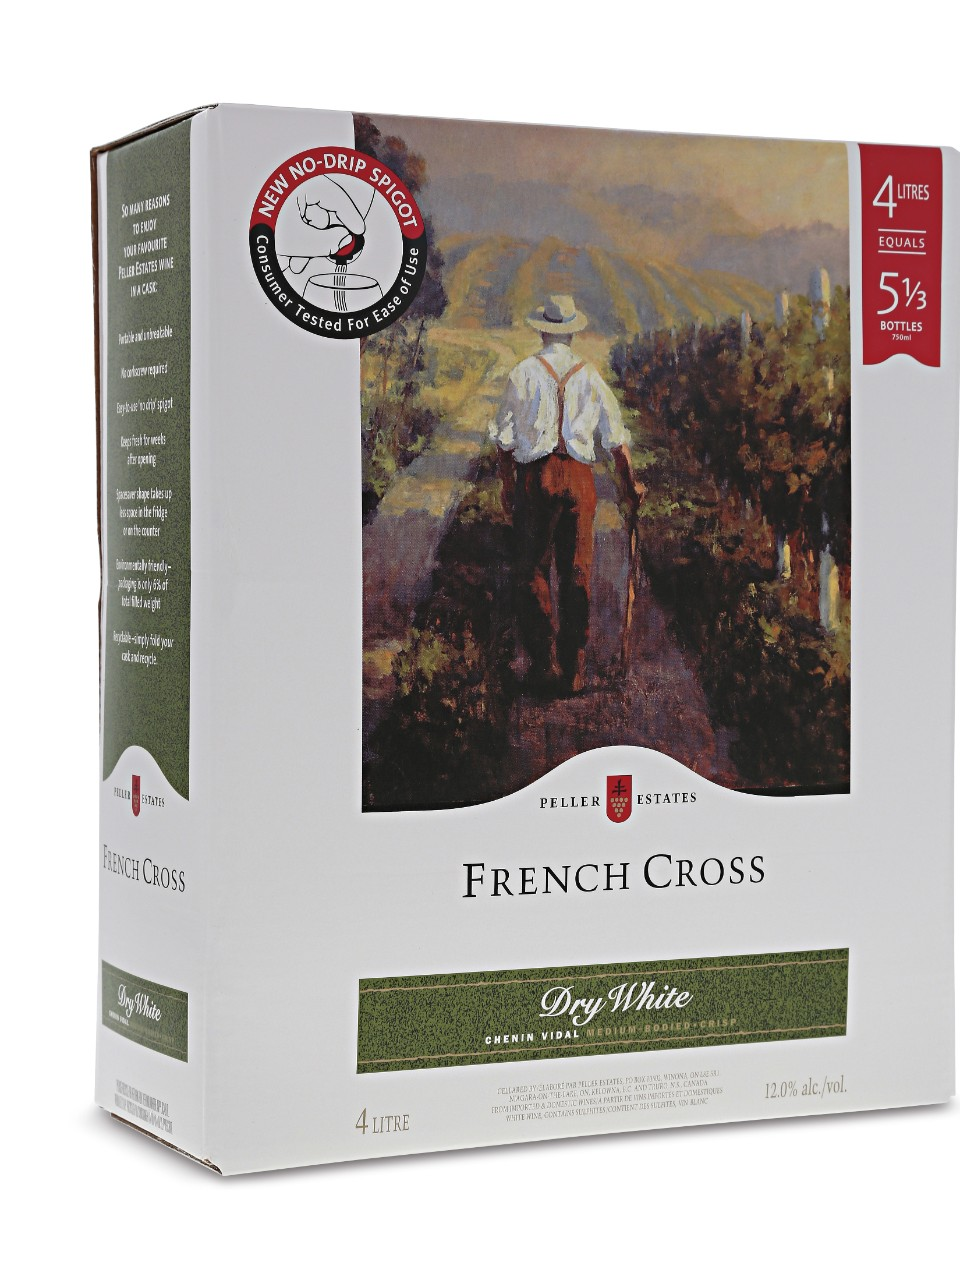 French Cross Dry White Bag in Box                                                                                               -A